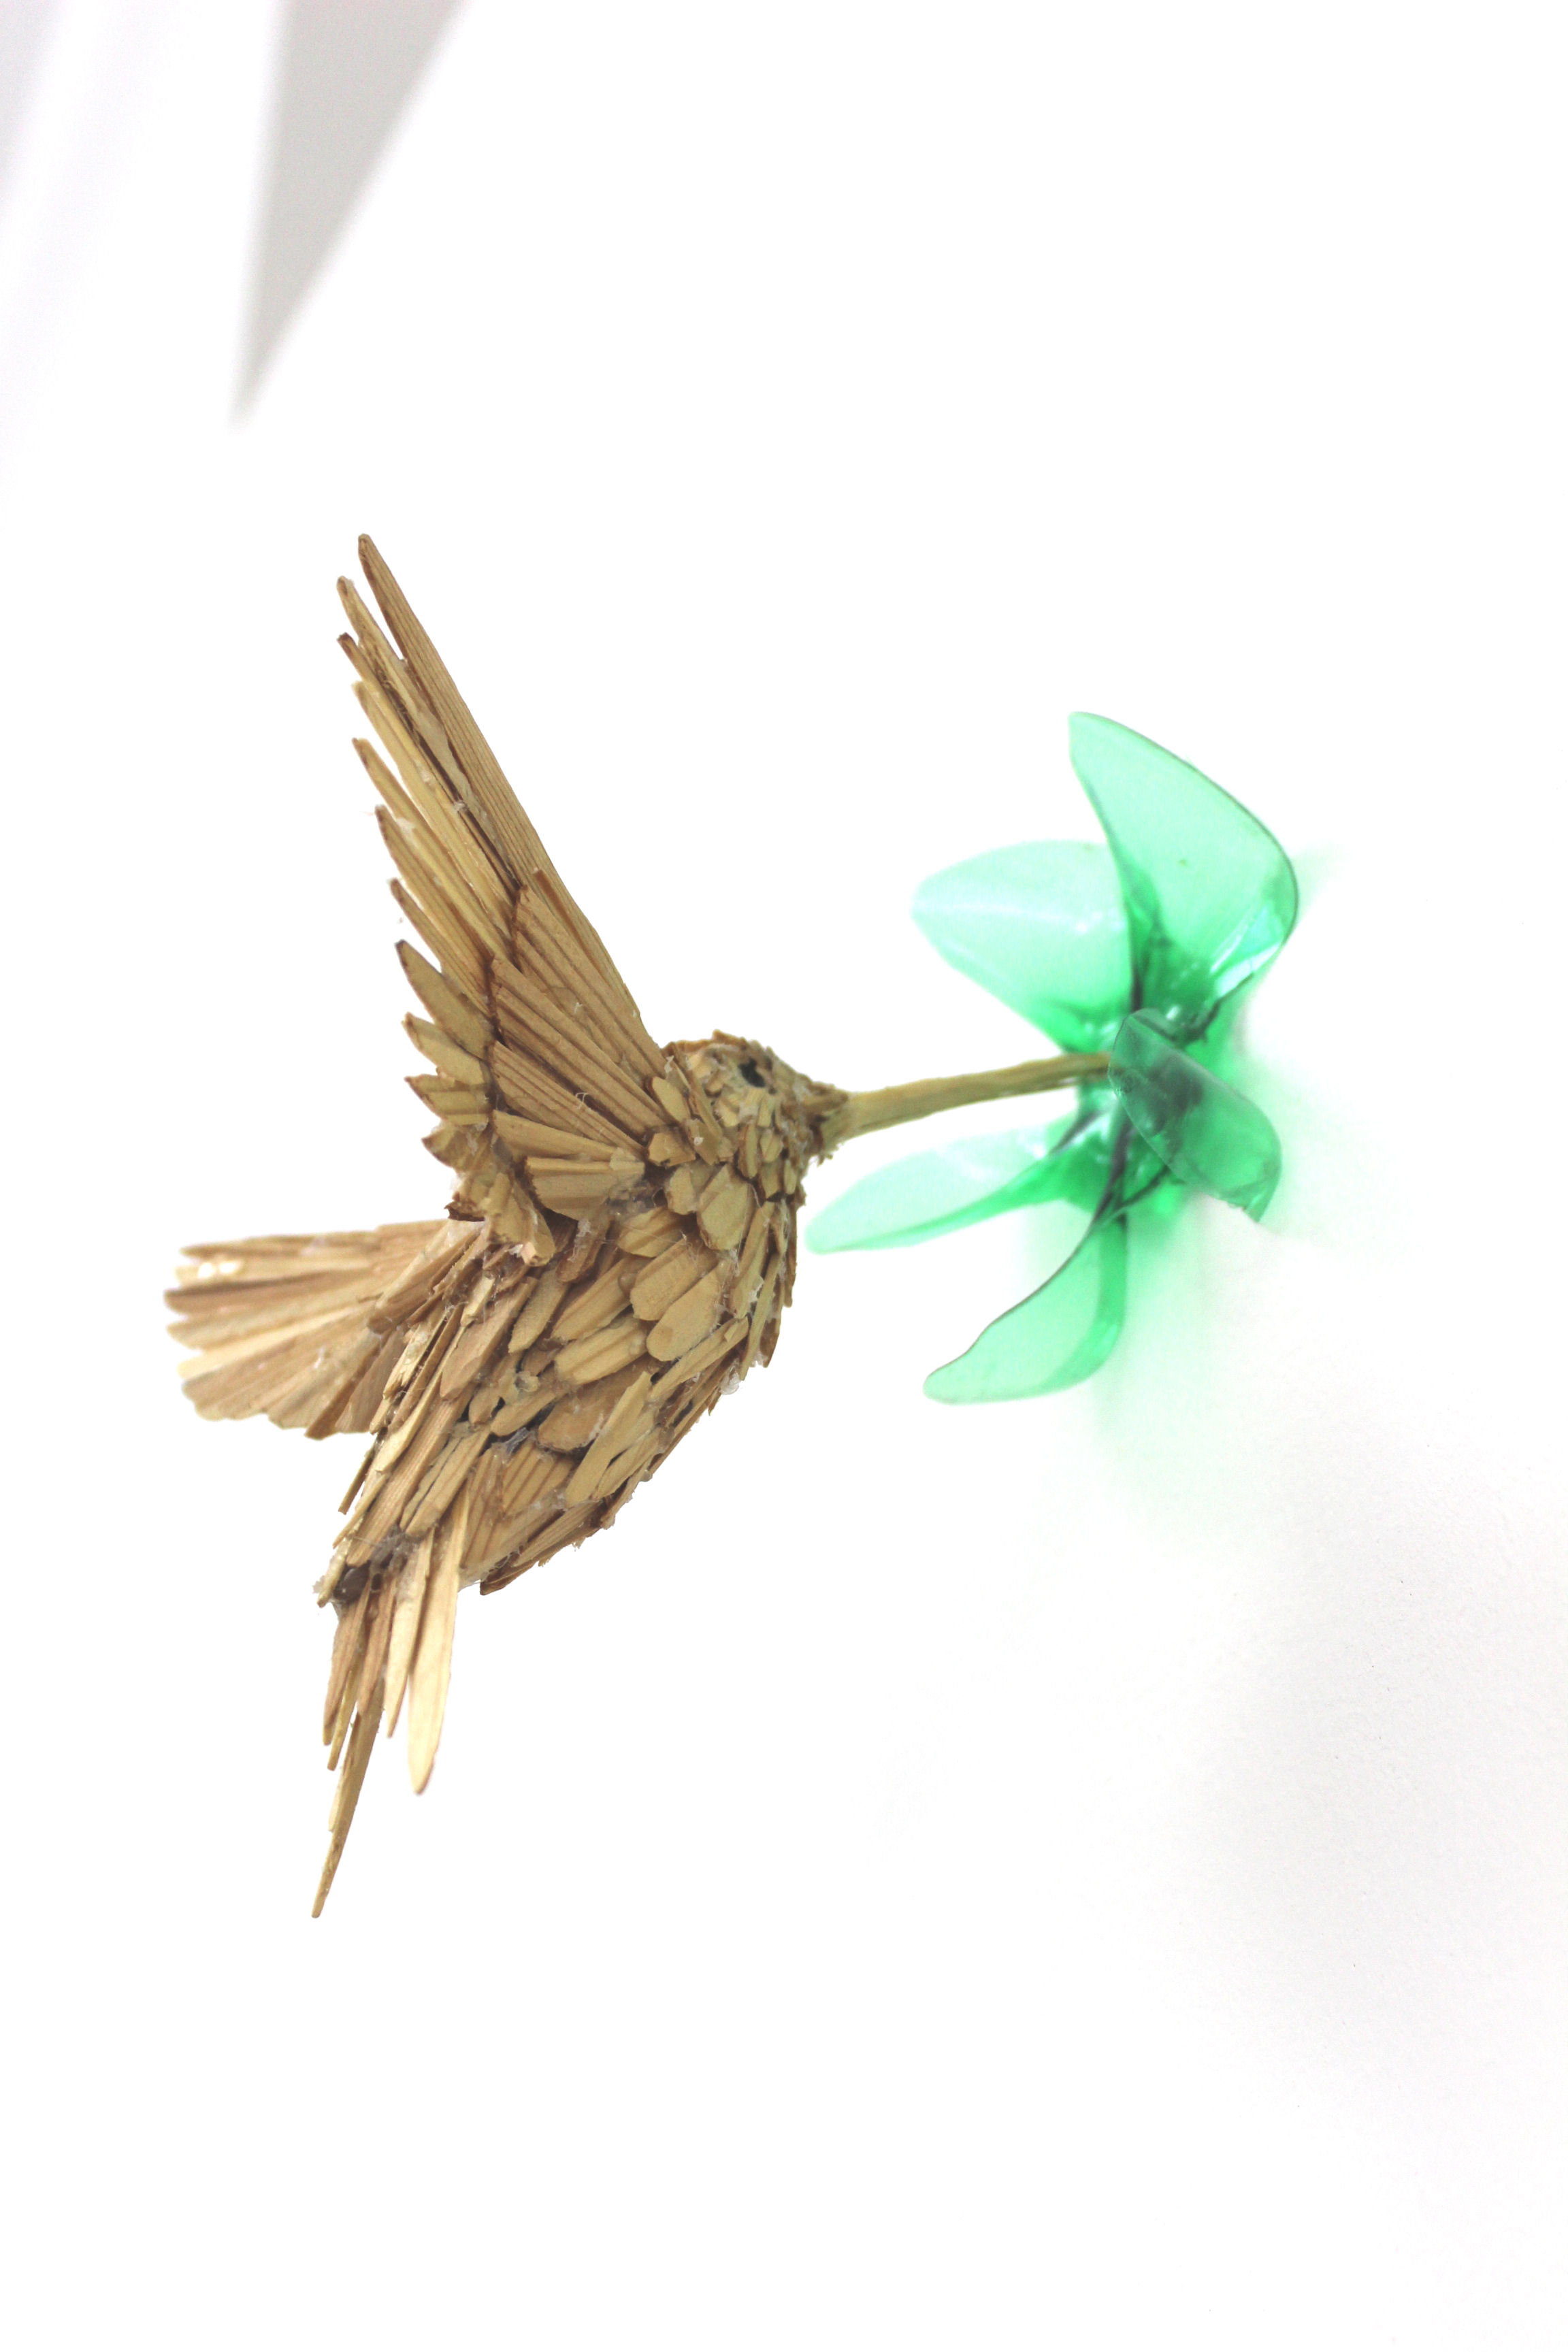 'Hummingbird' by artist Kevin Cantwell